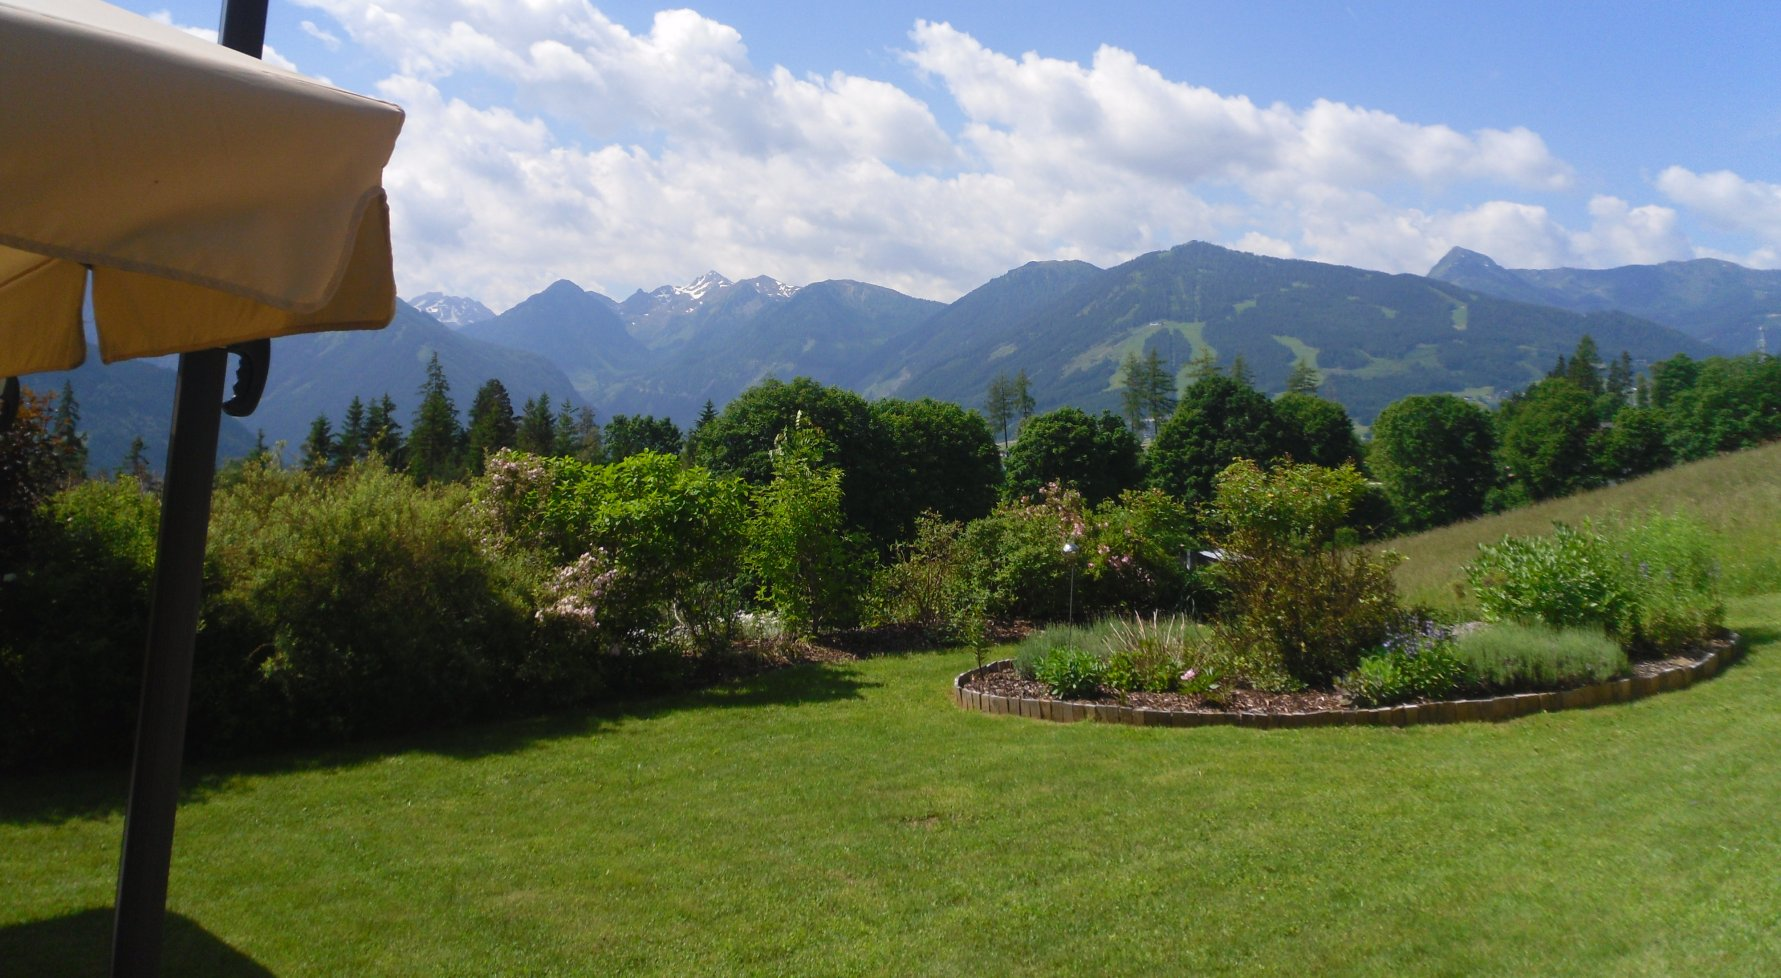 Property in 8972  Ramsau am Dachstein: RAMSAU AM DACHSTEIN: Country beauty overlooking the Planai - picture 1